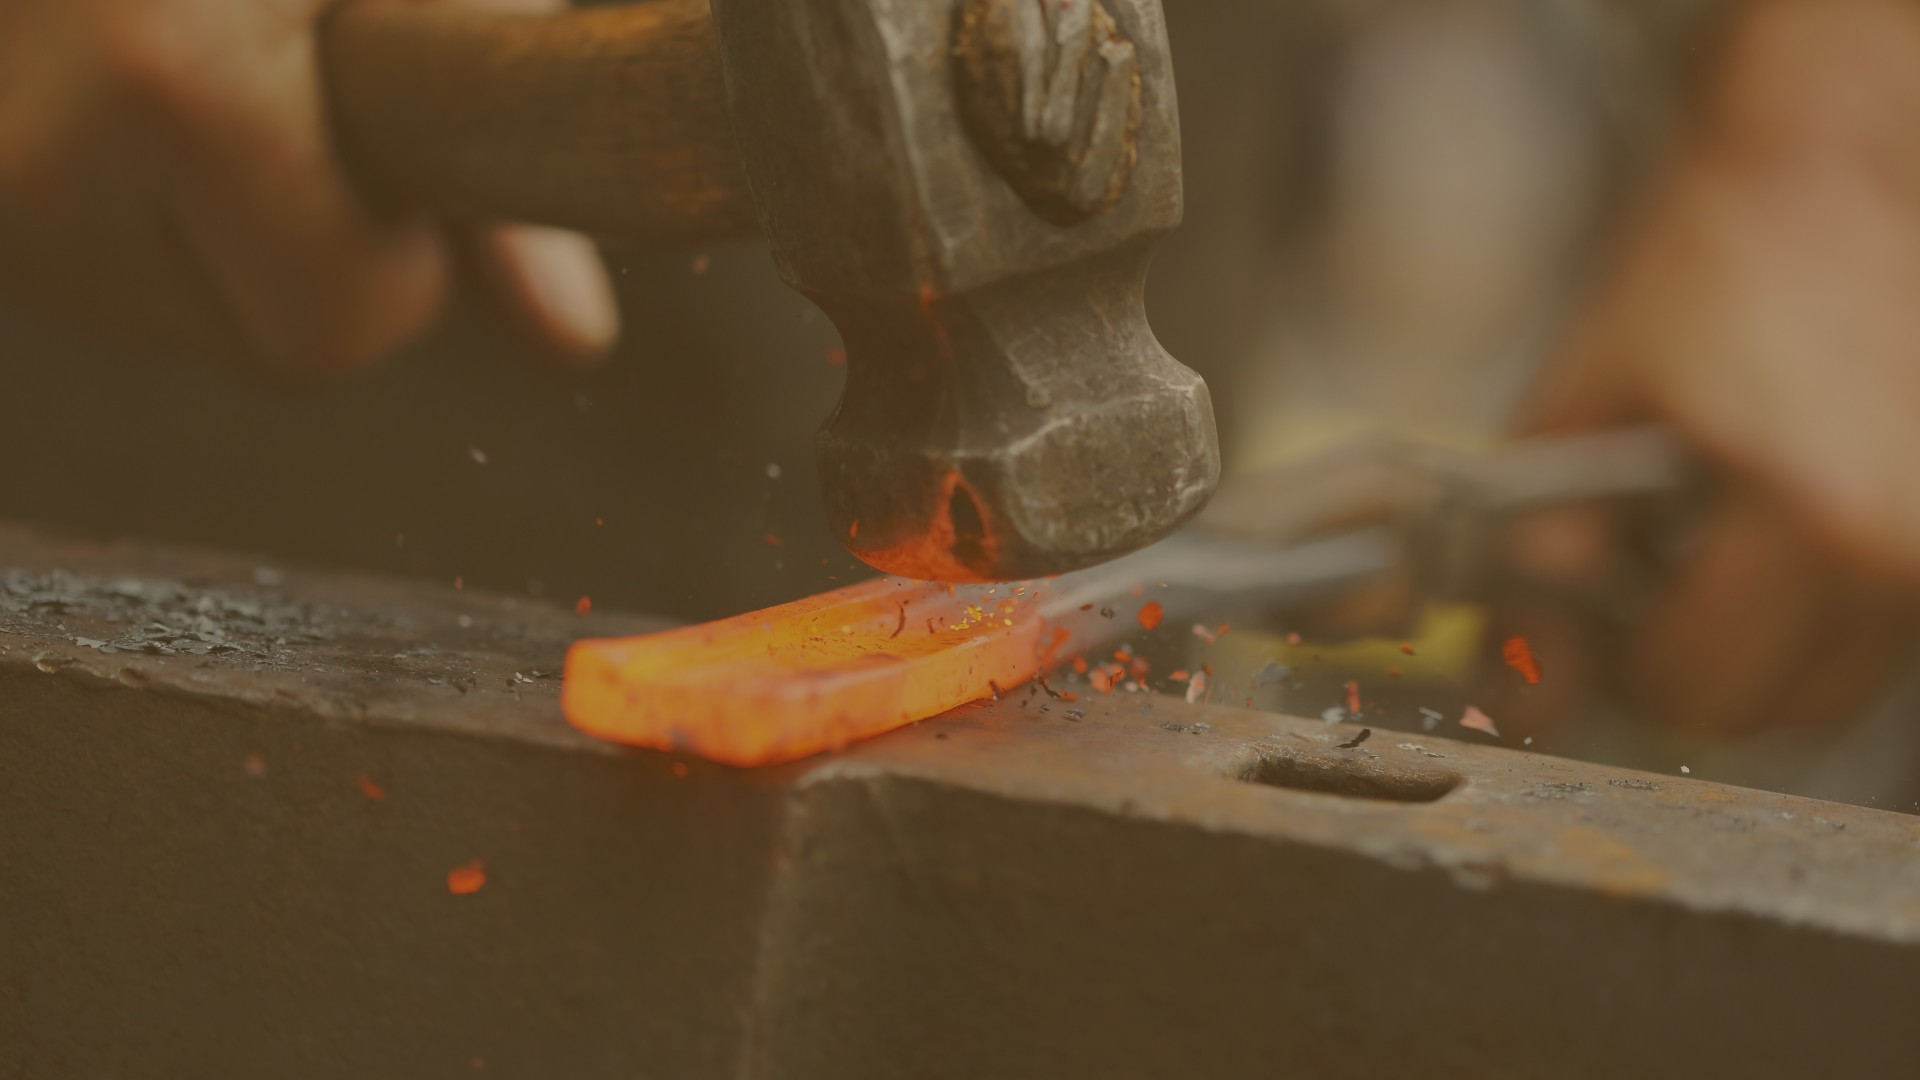 Pictures of a forge